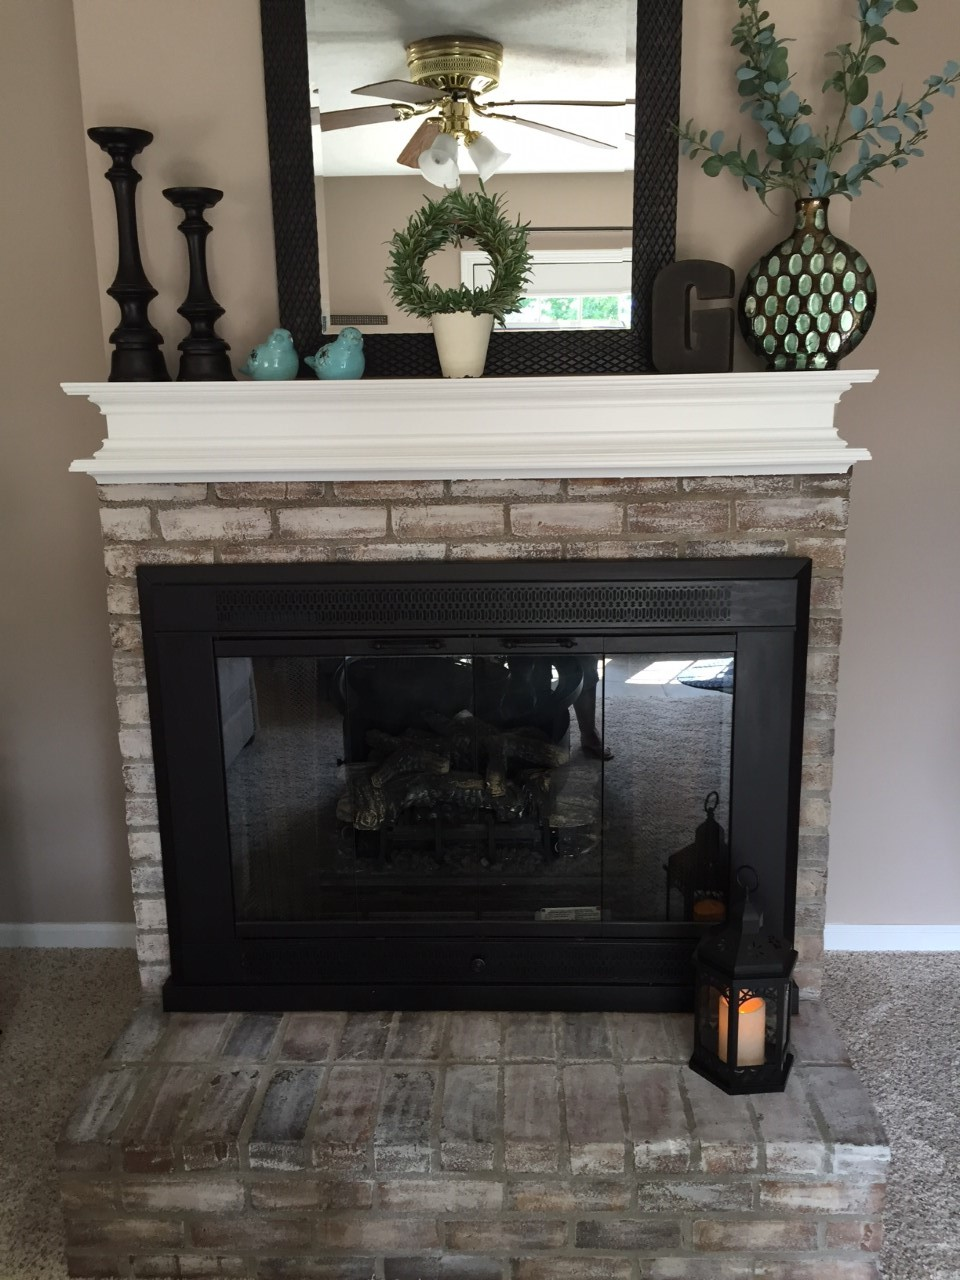 Whitewash Fireplace Before And After How To Whitewash Brick And Paint Your Brassy Fireplace Re Fabbed